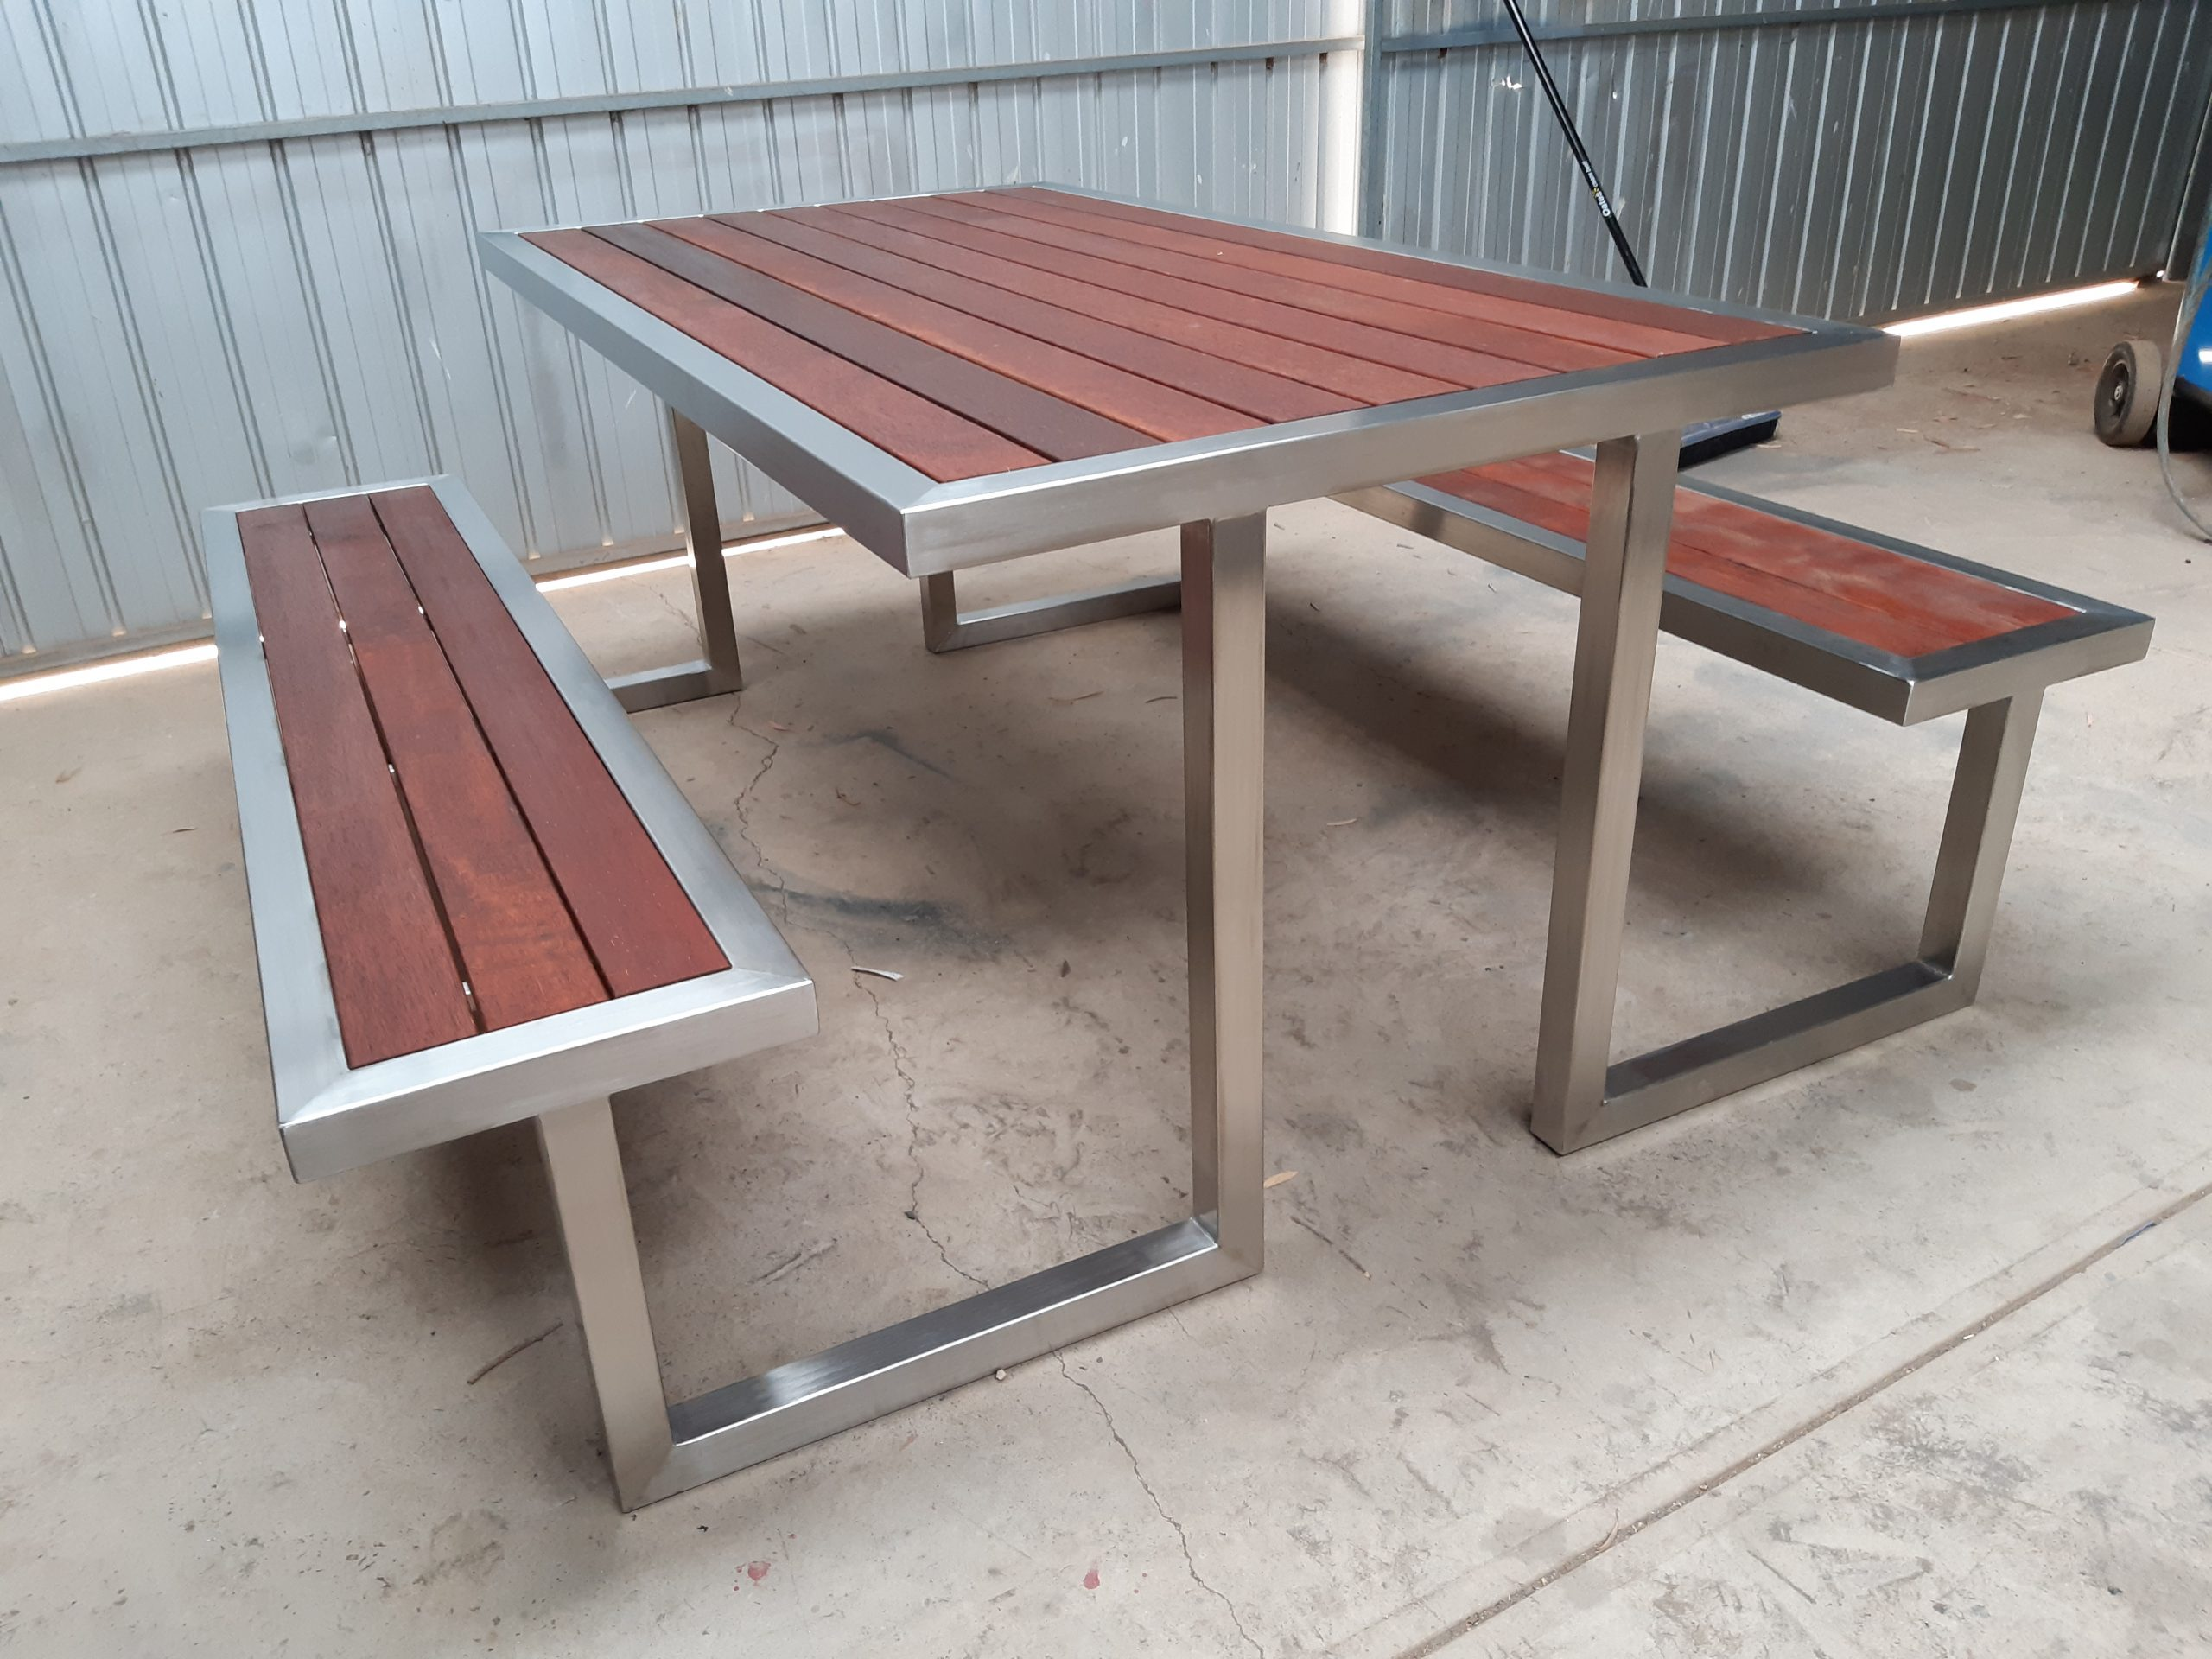 S/S table and attached bench seats